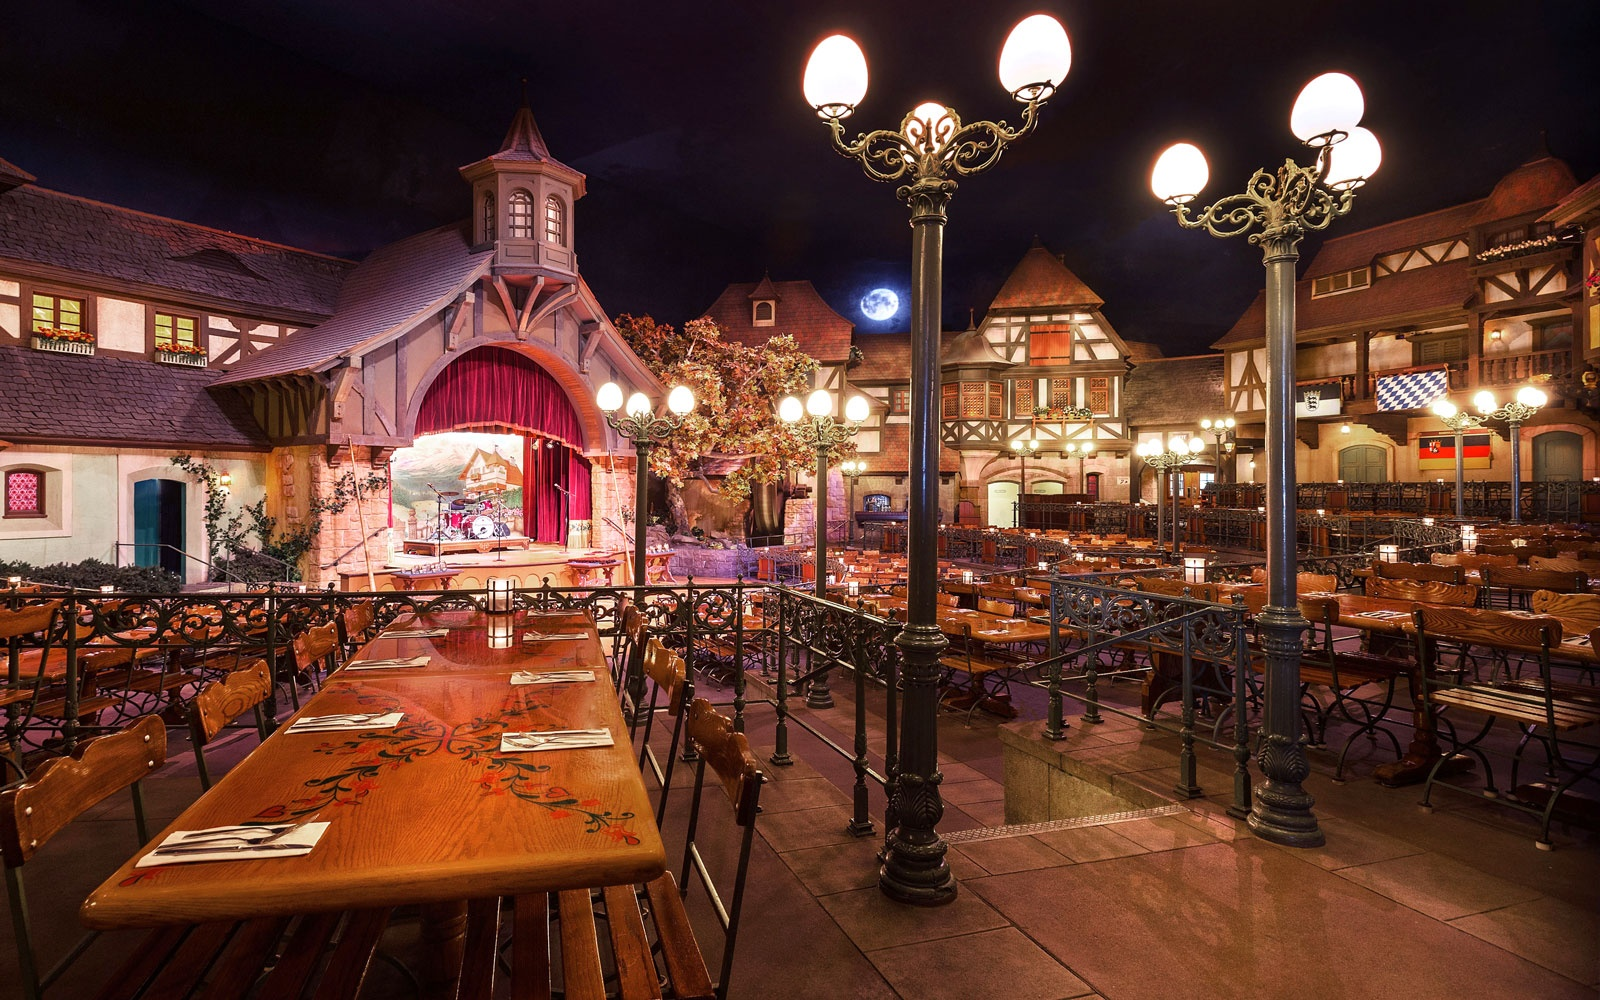 Beer Garten The Best Disney Restaurants Travel 43 Leisure